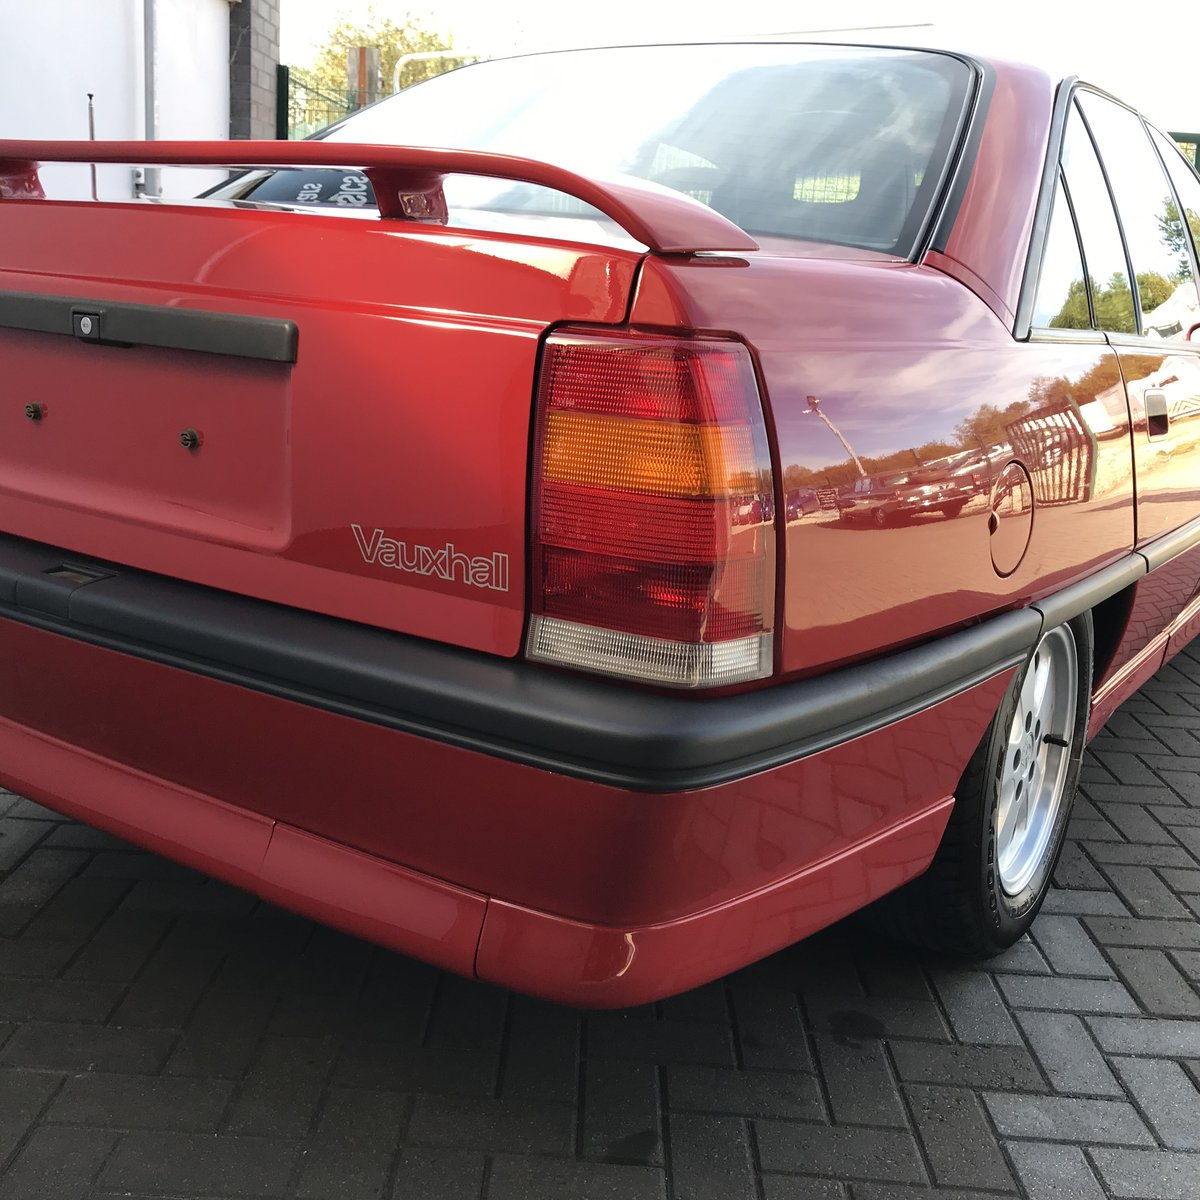 1989 Vauxhall Carlton 3000 Gsi, Manual, Restored  For Sale (picture 5 of 6)